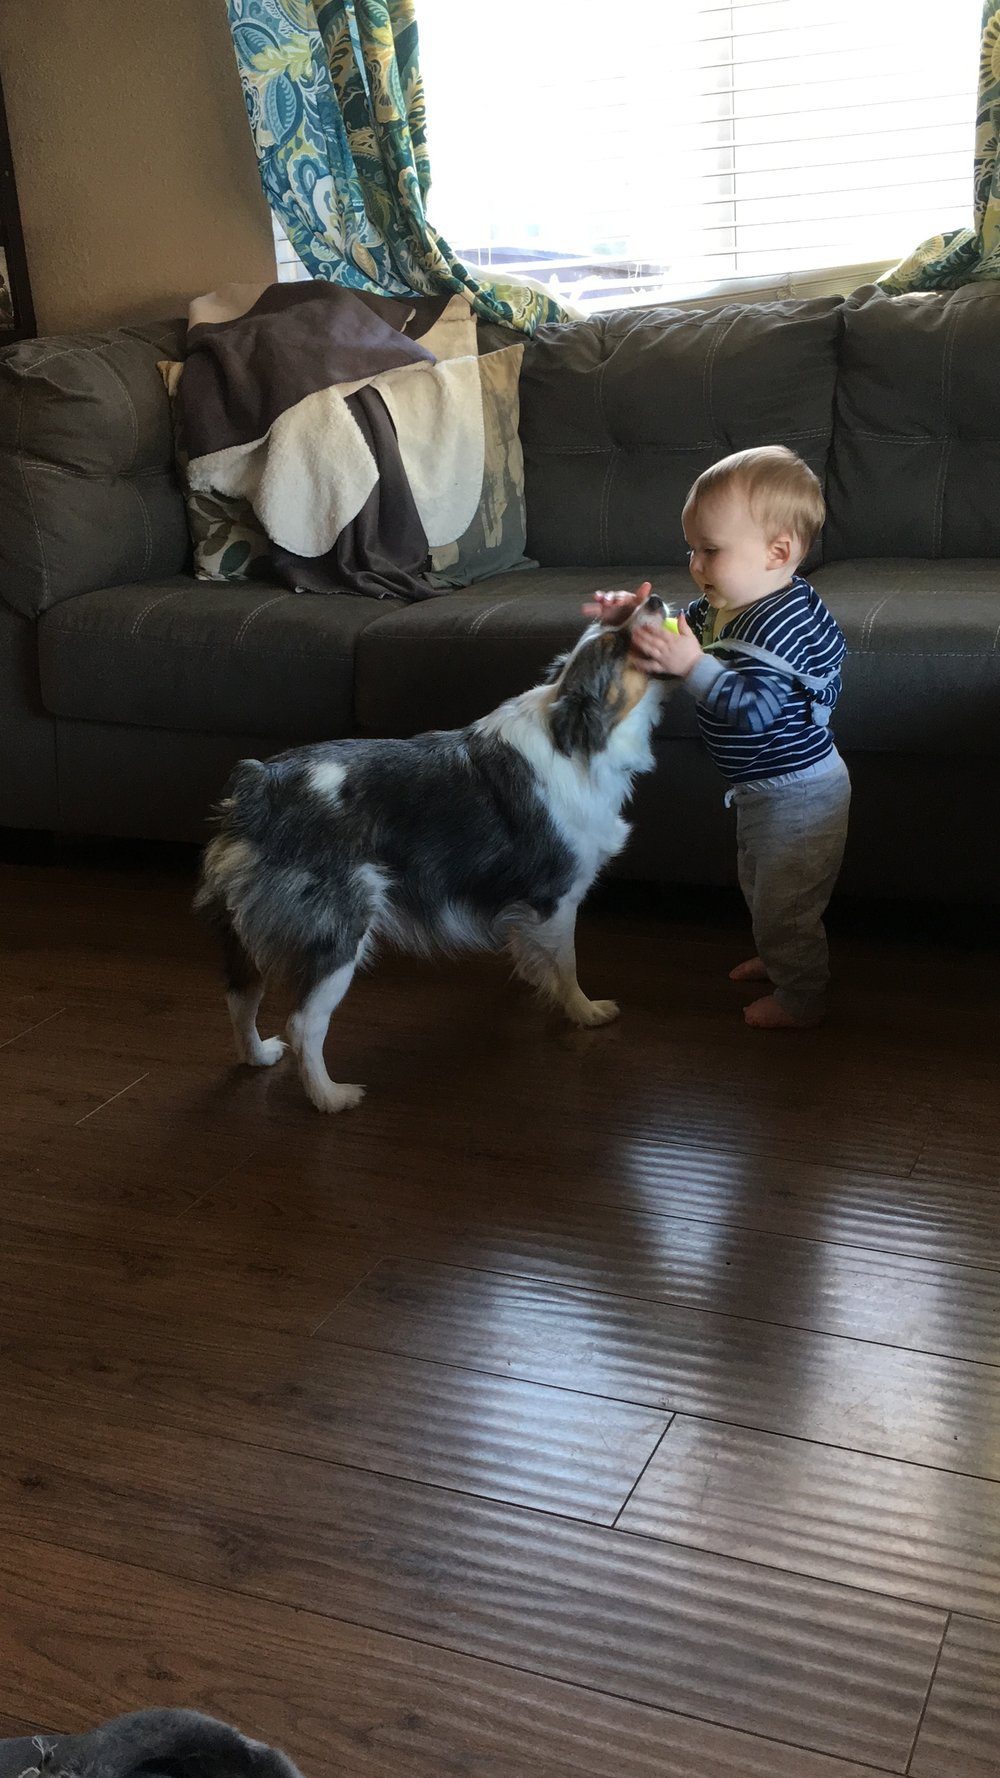 William started walking this week so he's been chasing around Dawson. Dawson is so patient with him and is constantly offering him balls to throw.